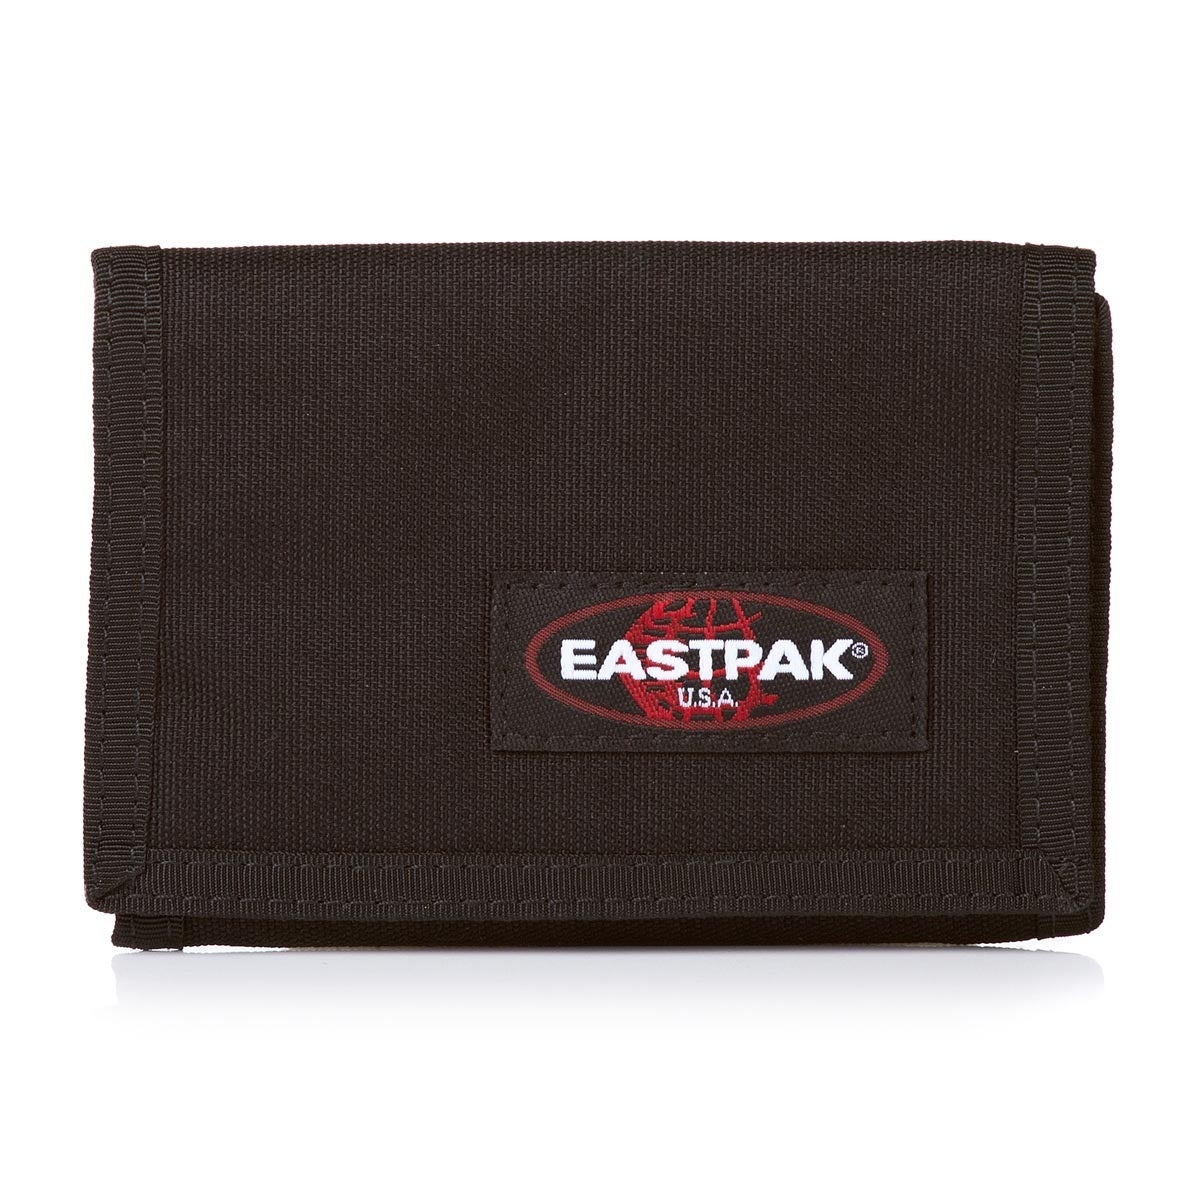 Eastpak Trifold Canvas Brieftasche - Black